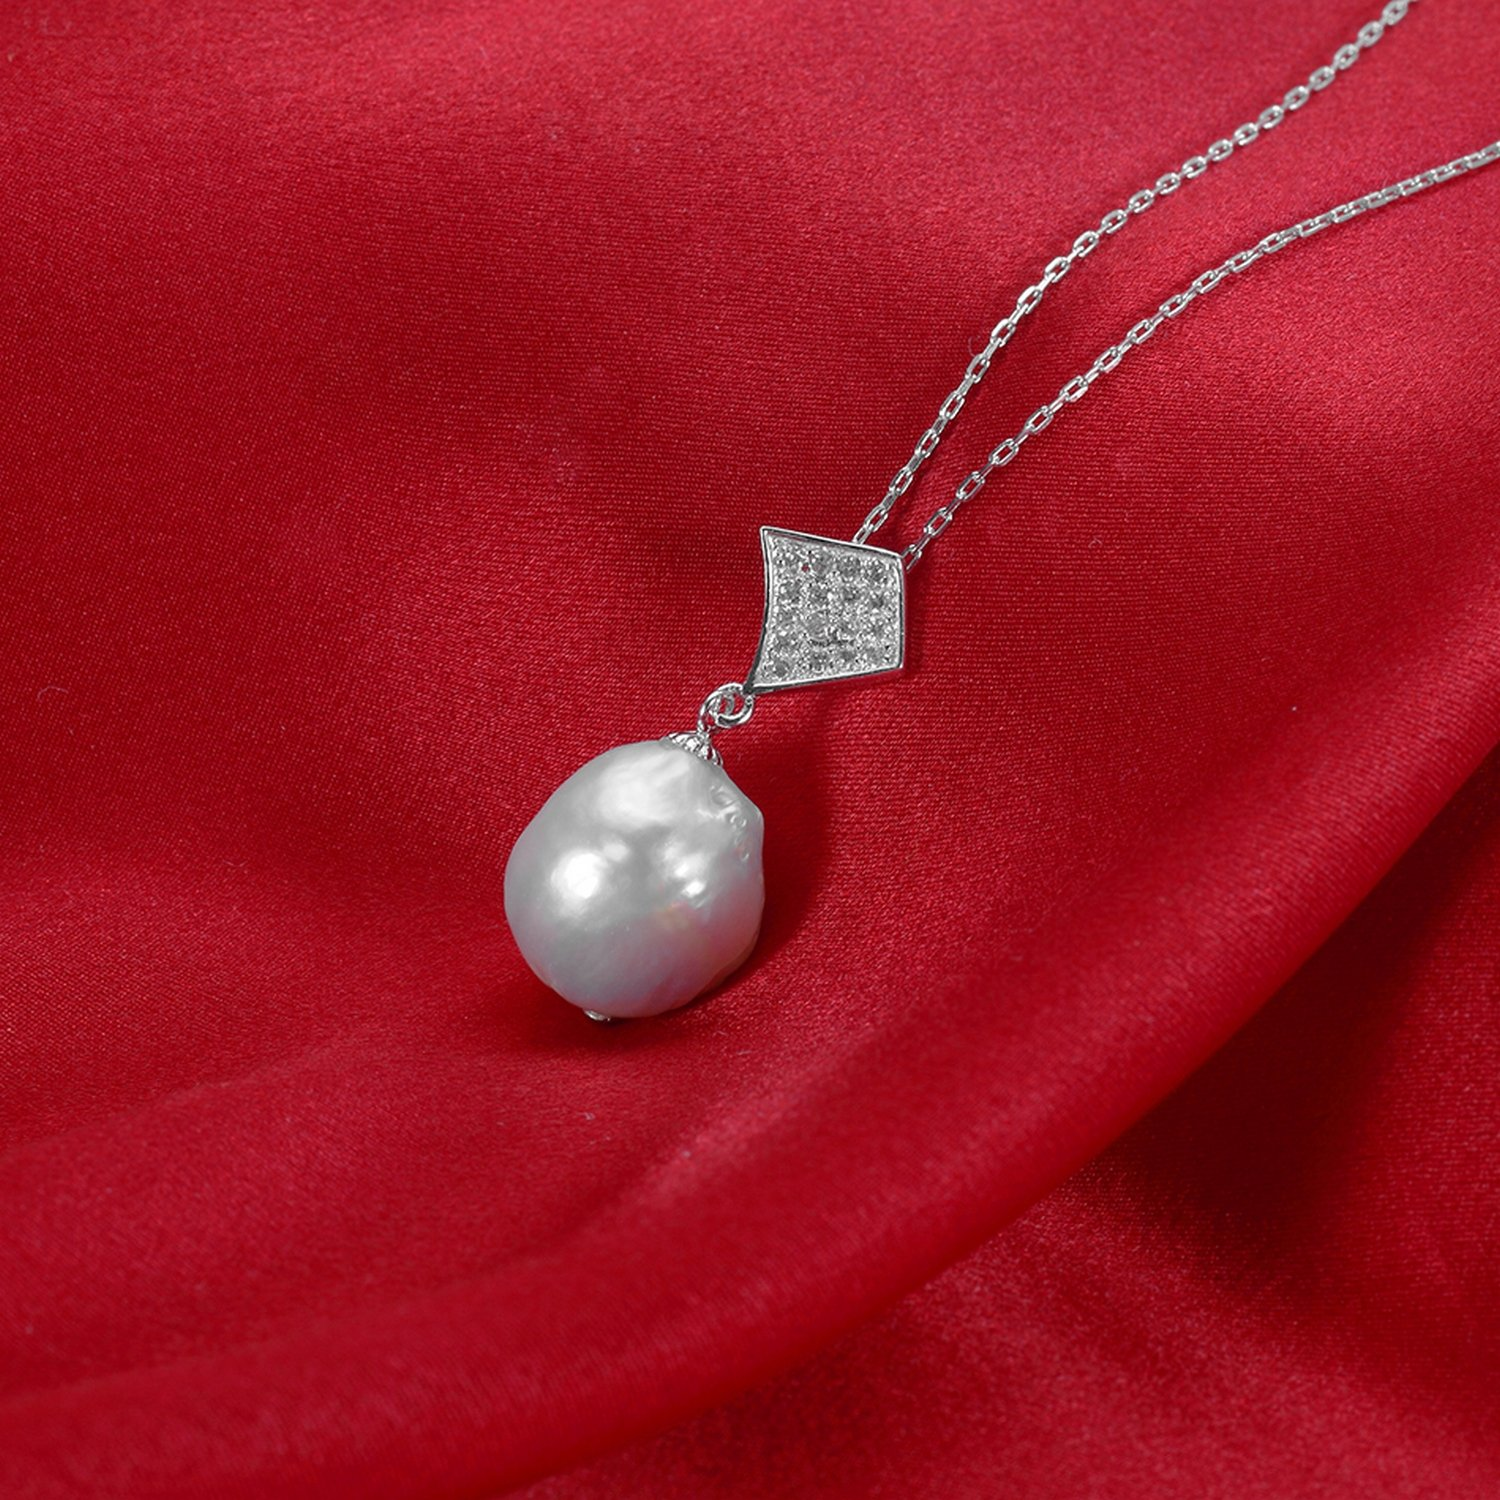 CS-DB Jewelry Silver Baroque Style White Pearl Chain Charm Pendants Necklaces